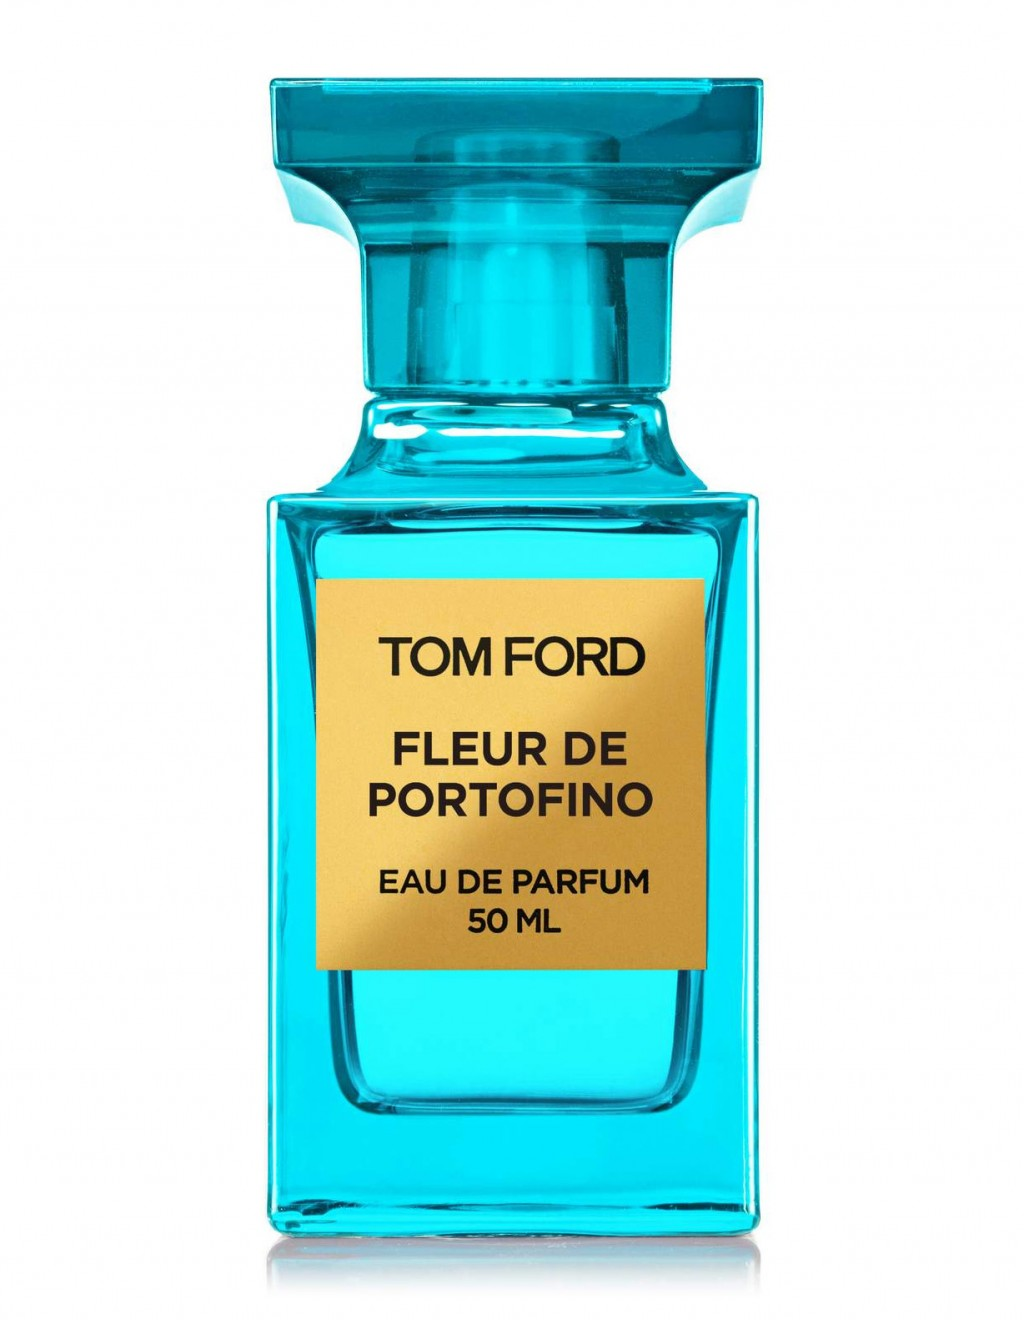 Transport Yourself to Italy with Tom Ford's New Fragrance